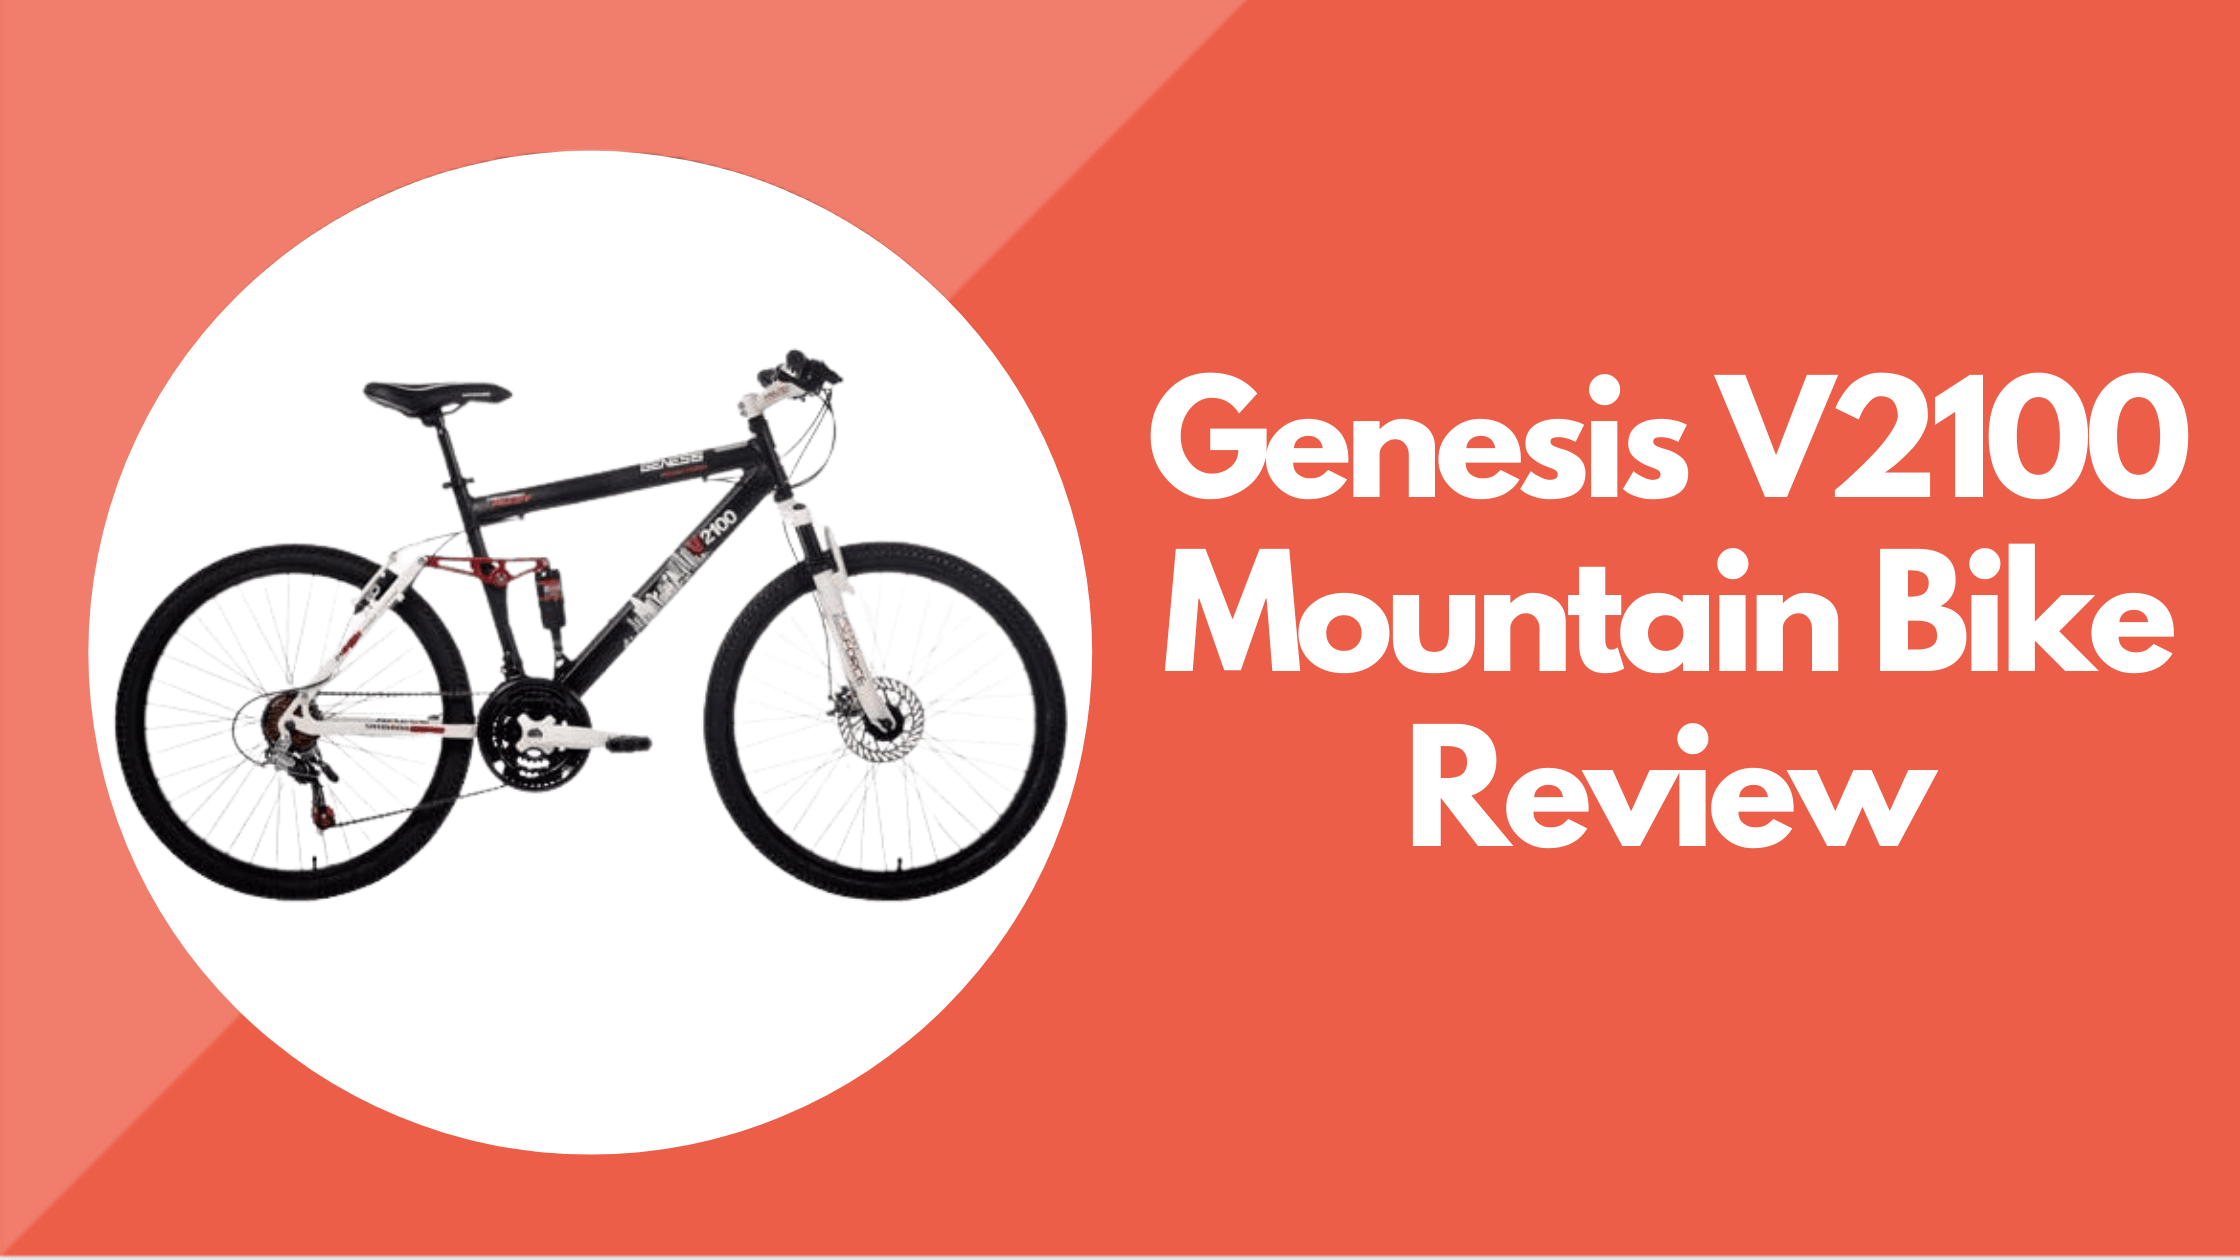 Genesis V2100 Mountain Bike Review